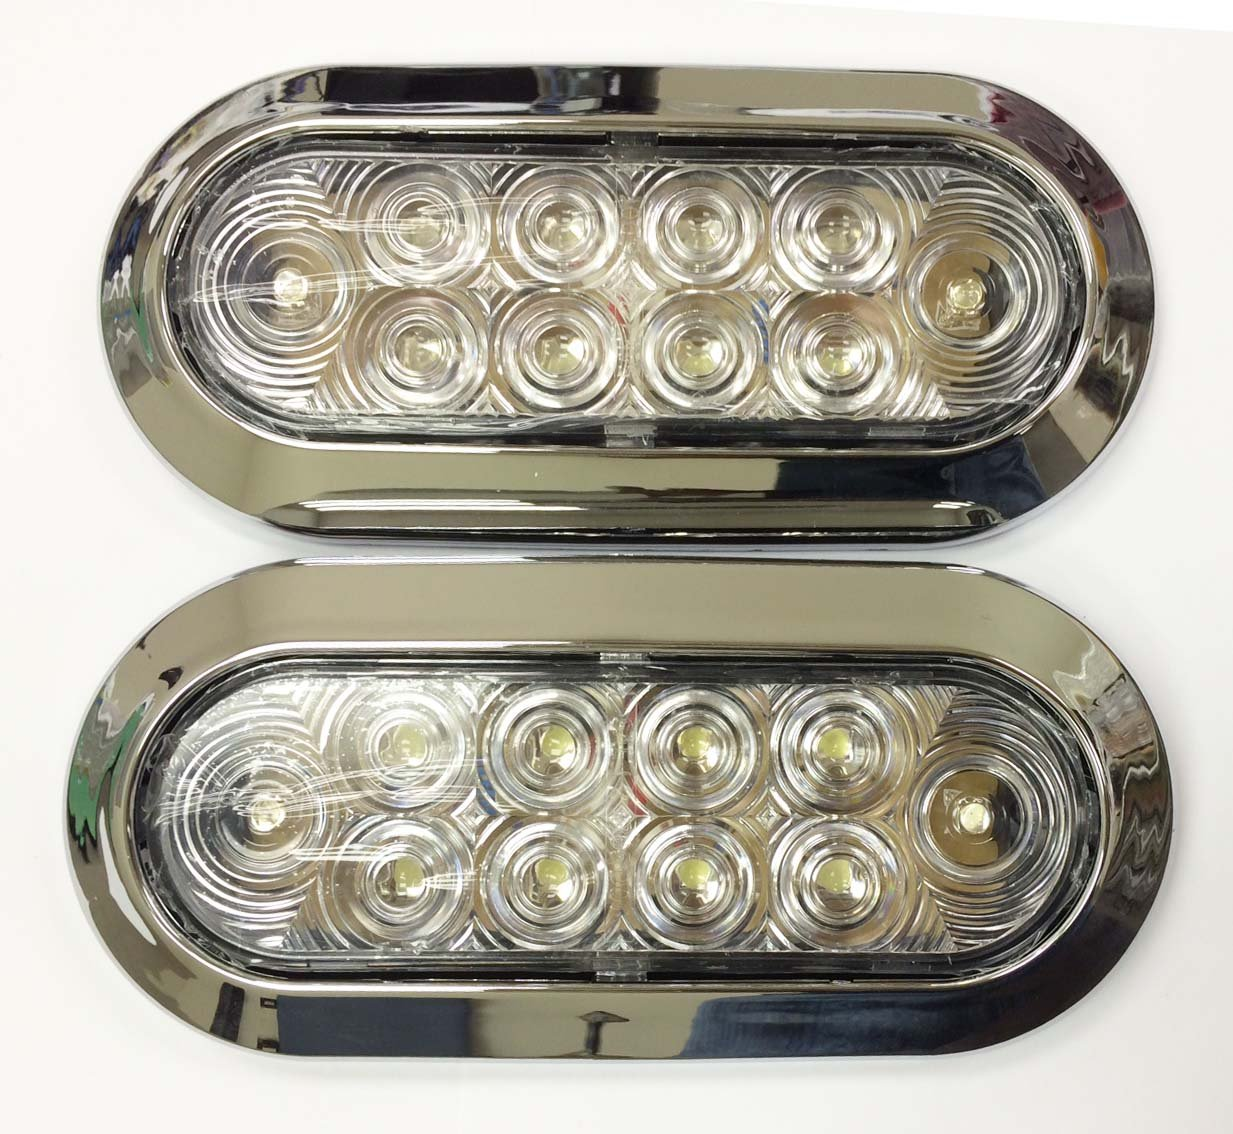 Set of 2 White/Clear 6'' Oval 10 LED Surface Mount Trailer Truck Reverse Backup Light w/ Chorme Trim- 24031